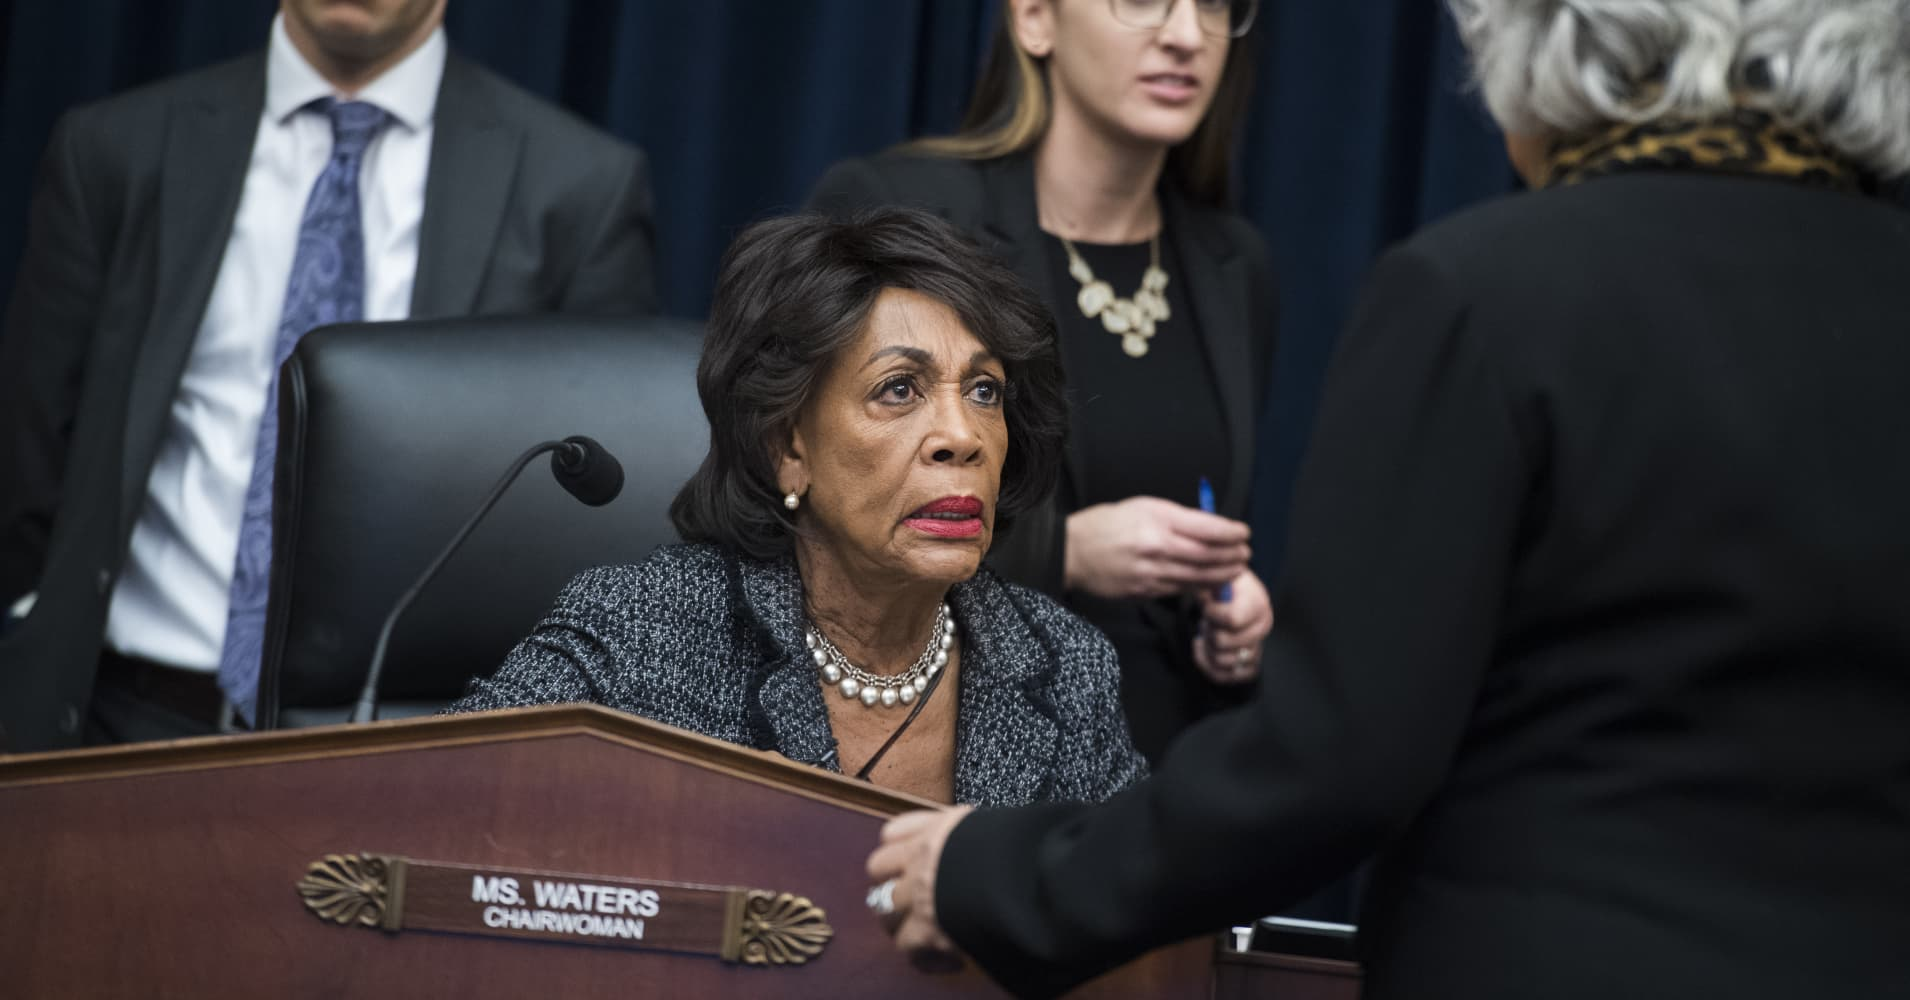 Chairwoman Maxine Waters, D-Calif., left, talks with Rep. Joyce Beatty, D-Ohio, during a House Financial Services Committee organizational meeting in Rayburn Building.